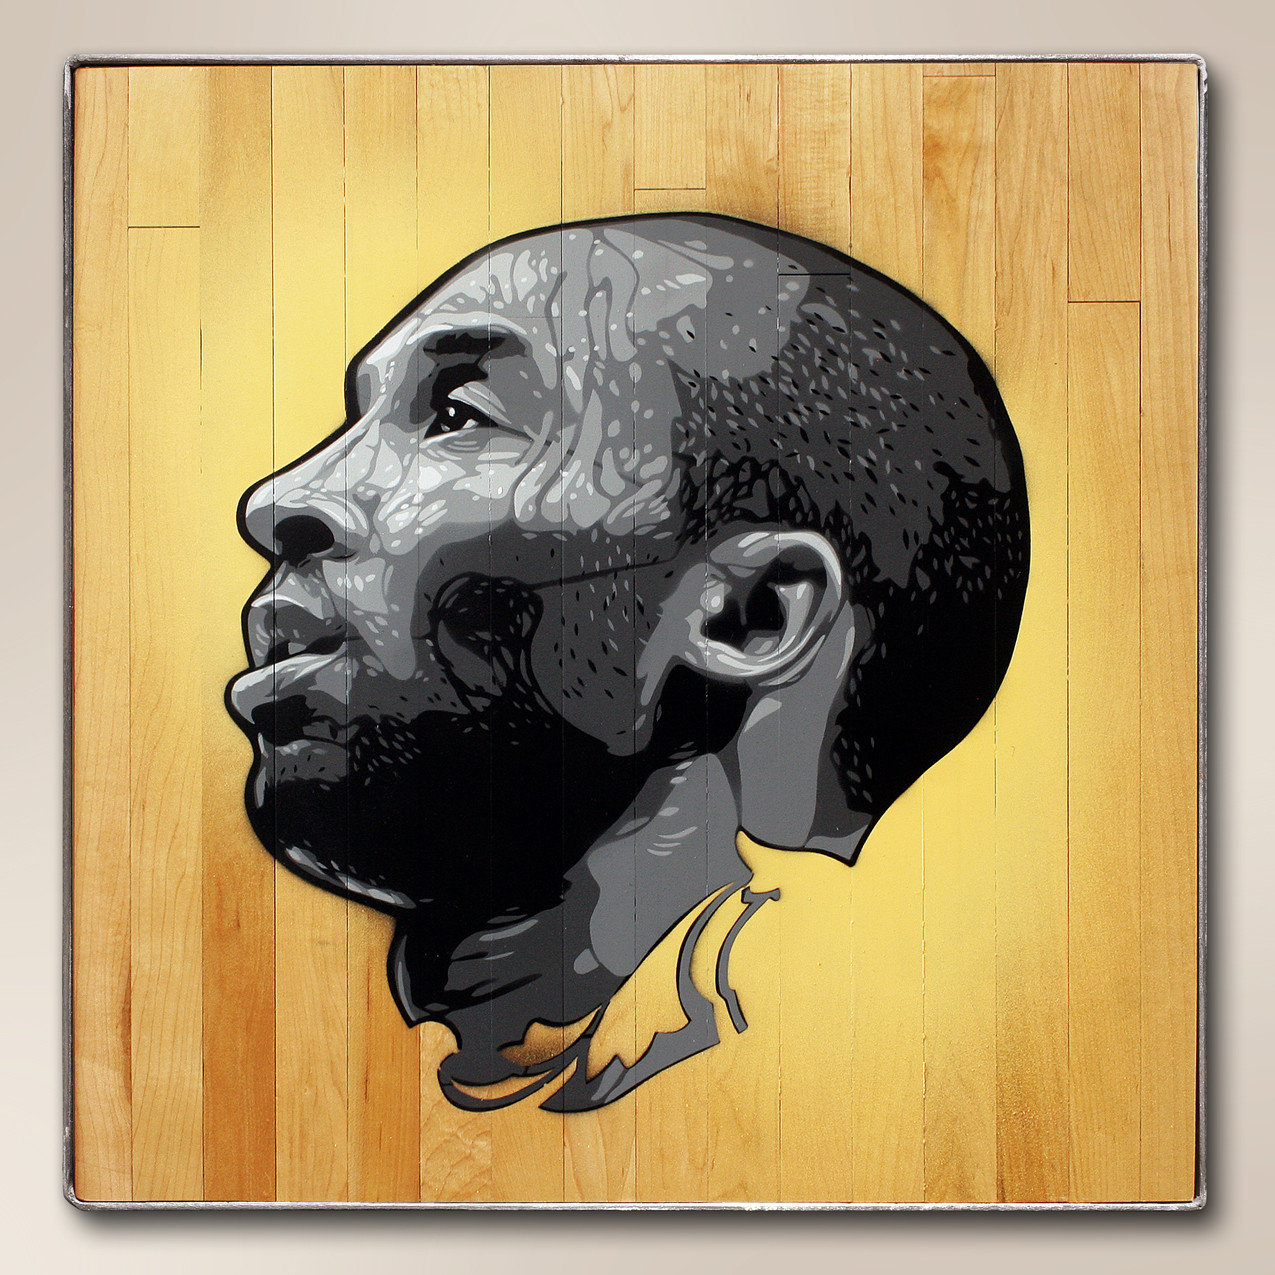 'Kobe Bryant' -  2011 for the NBA and Art of Basketball